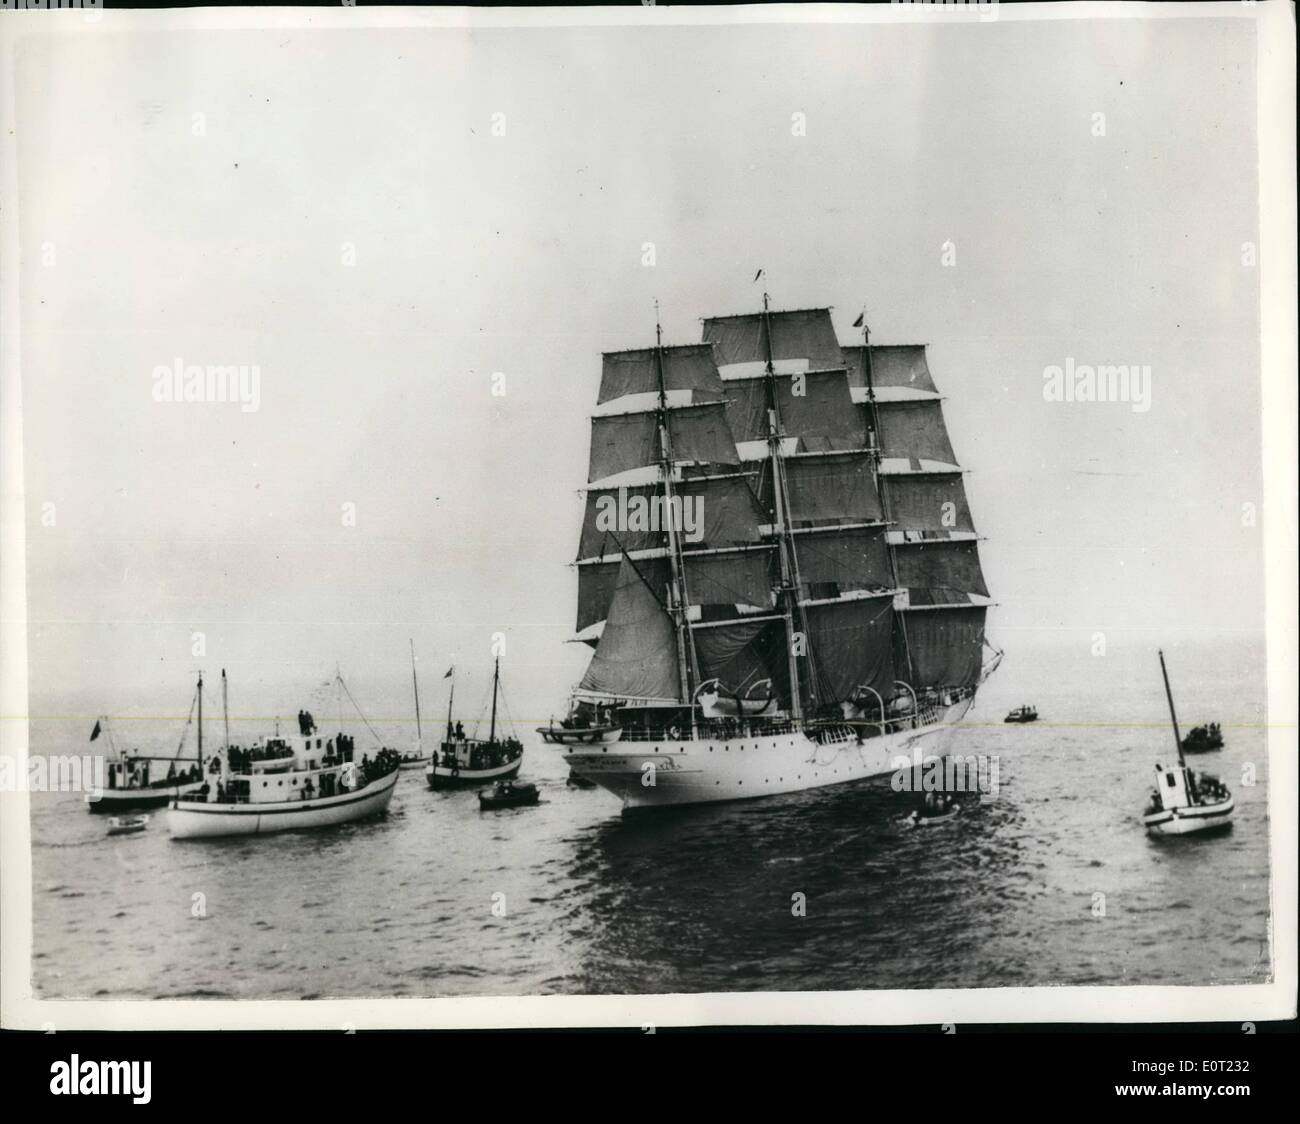 Jul. 07, 1960 - Sailing Ship In Race to Ostend: Training ships from eight nations, including eighteen from Britain, are taking part in the 587-mile race from the Norwegian naval base of Horten, near Oslo, to the North Hnder Light, near Ostend. Photo shows The famous ship ''Christian Radich'', which took part in the film ''Windjammer'', pictured just after the start of the race. - Stock Image